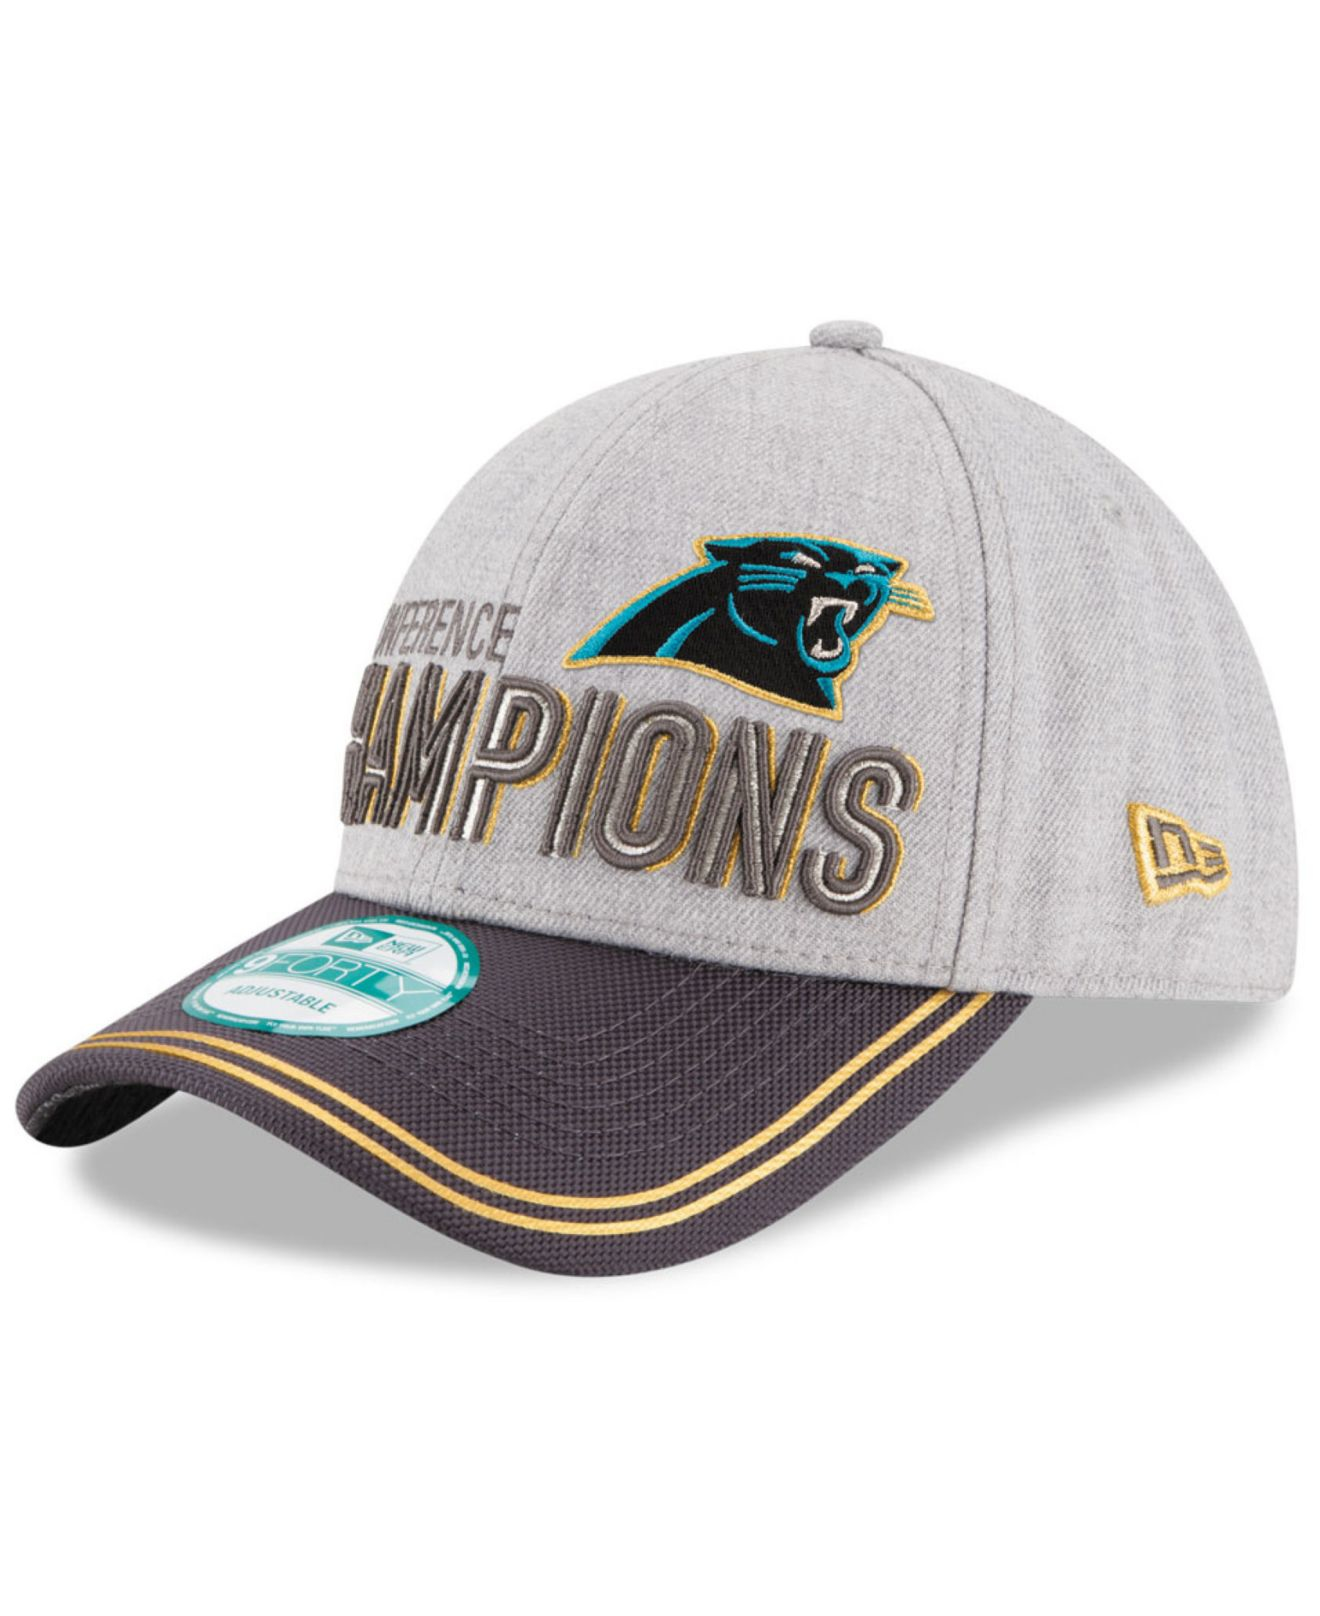 Lyst - KTZ Carolina Panthers Super Bowl 50 Conference Champ Cap in ... 1a3a5d4bd